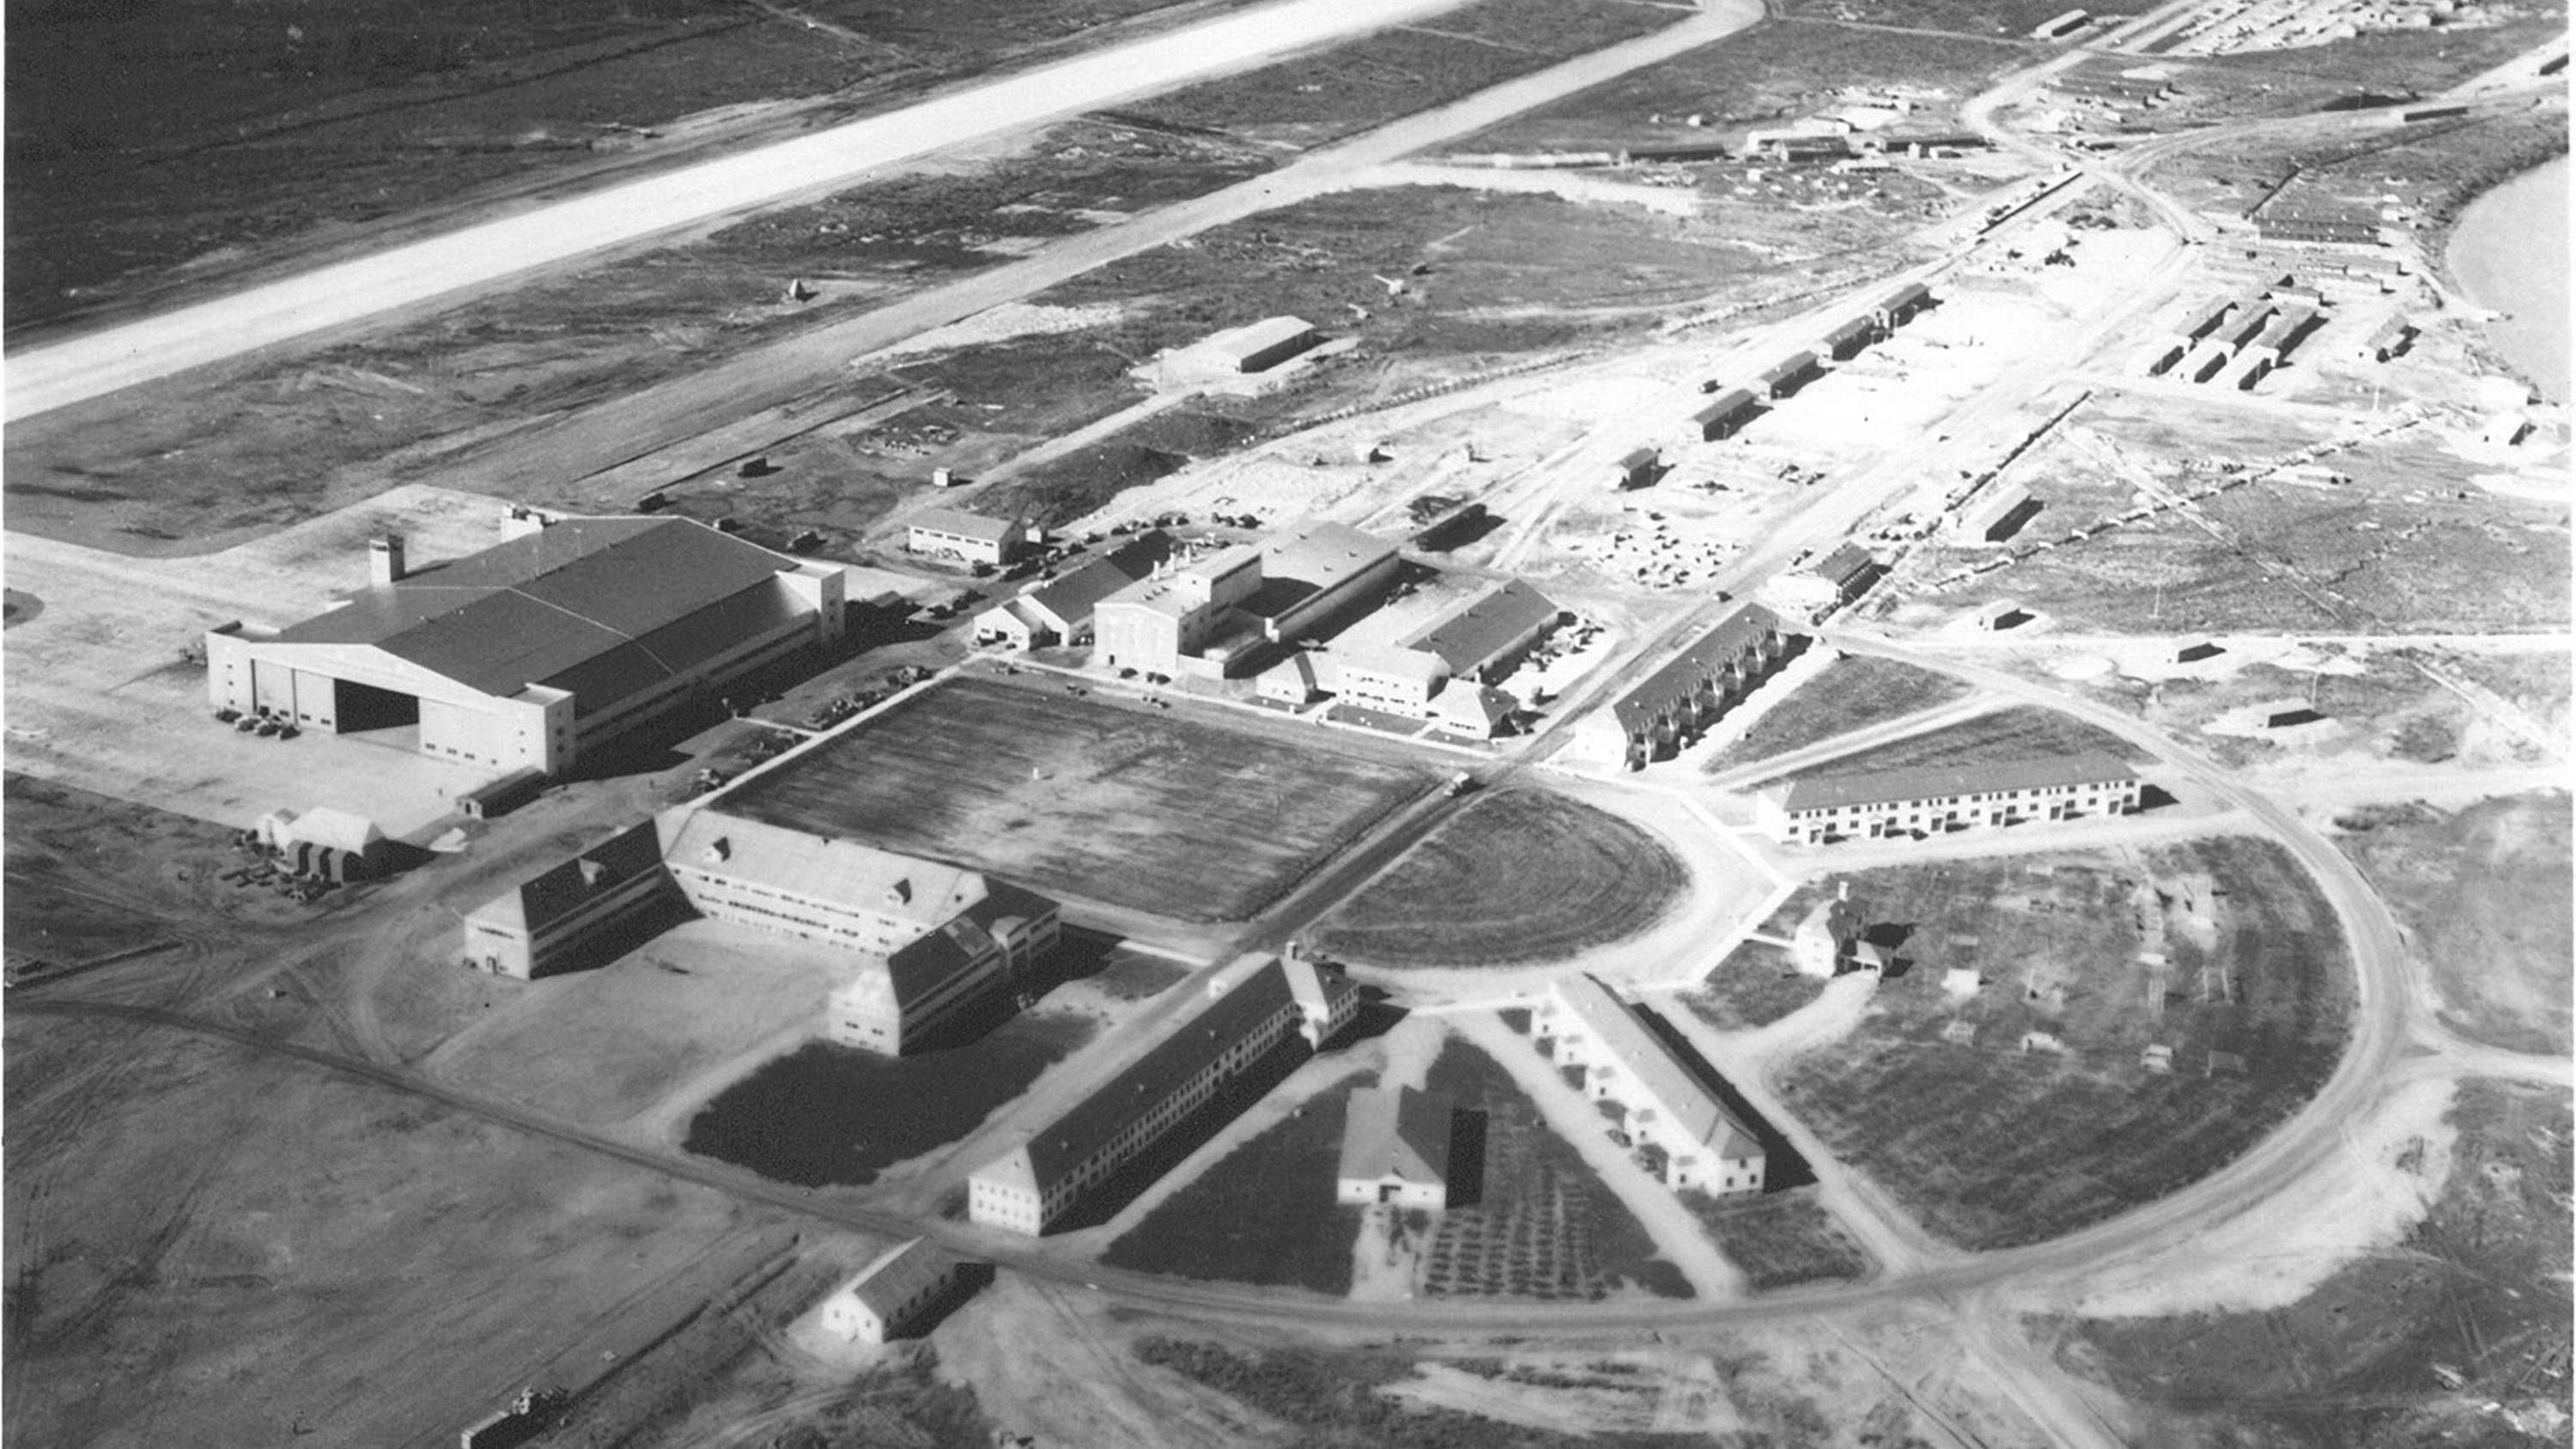 A historic aerial photo of Ladd Field hangars and runways